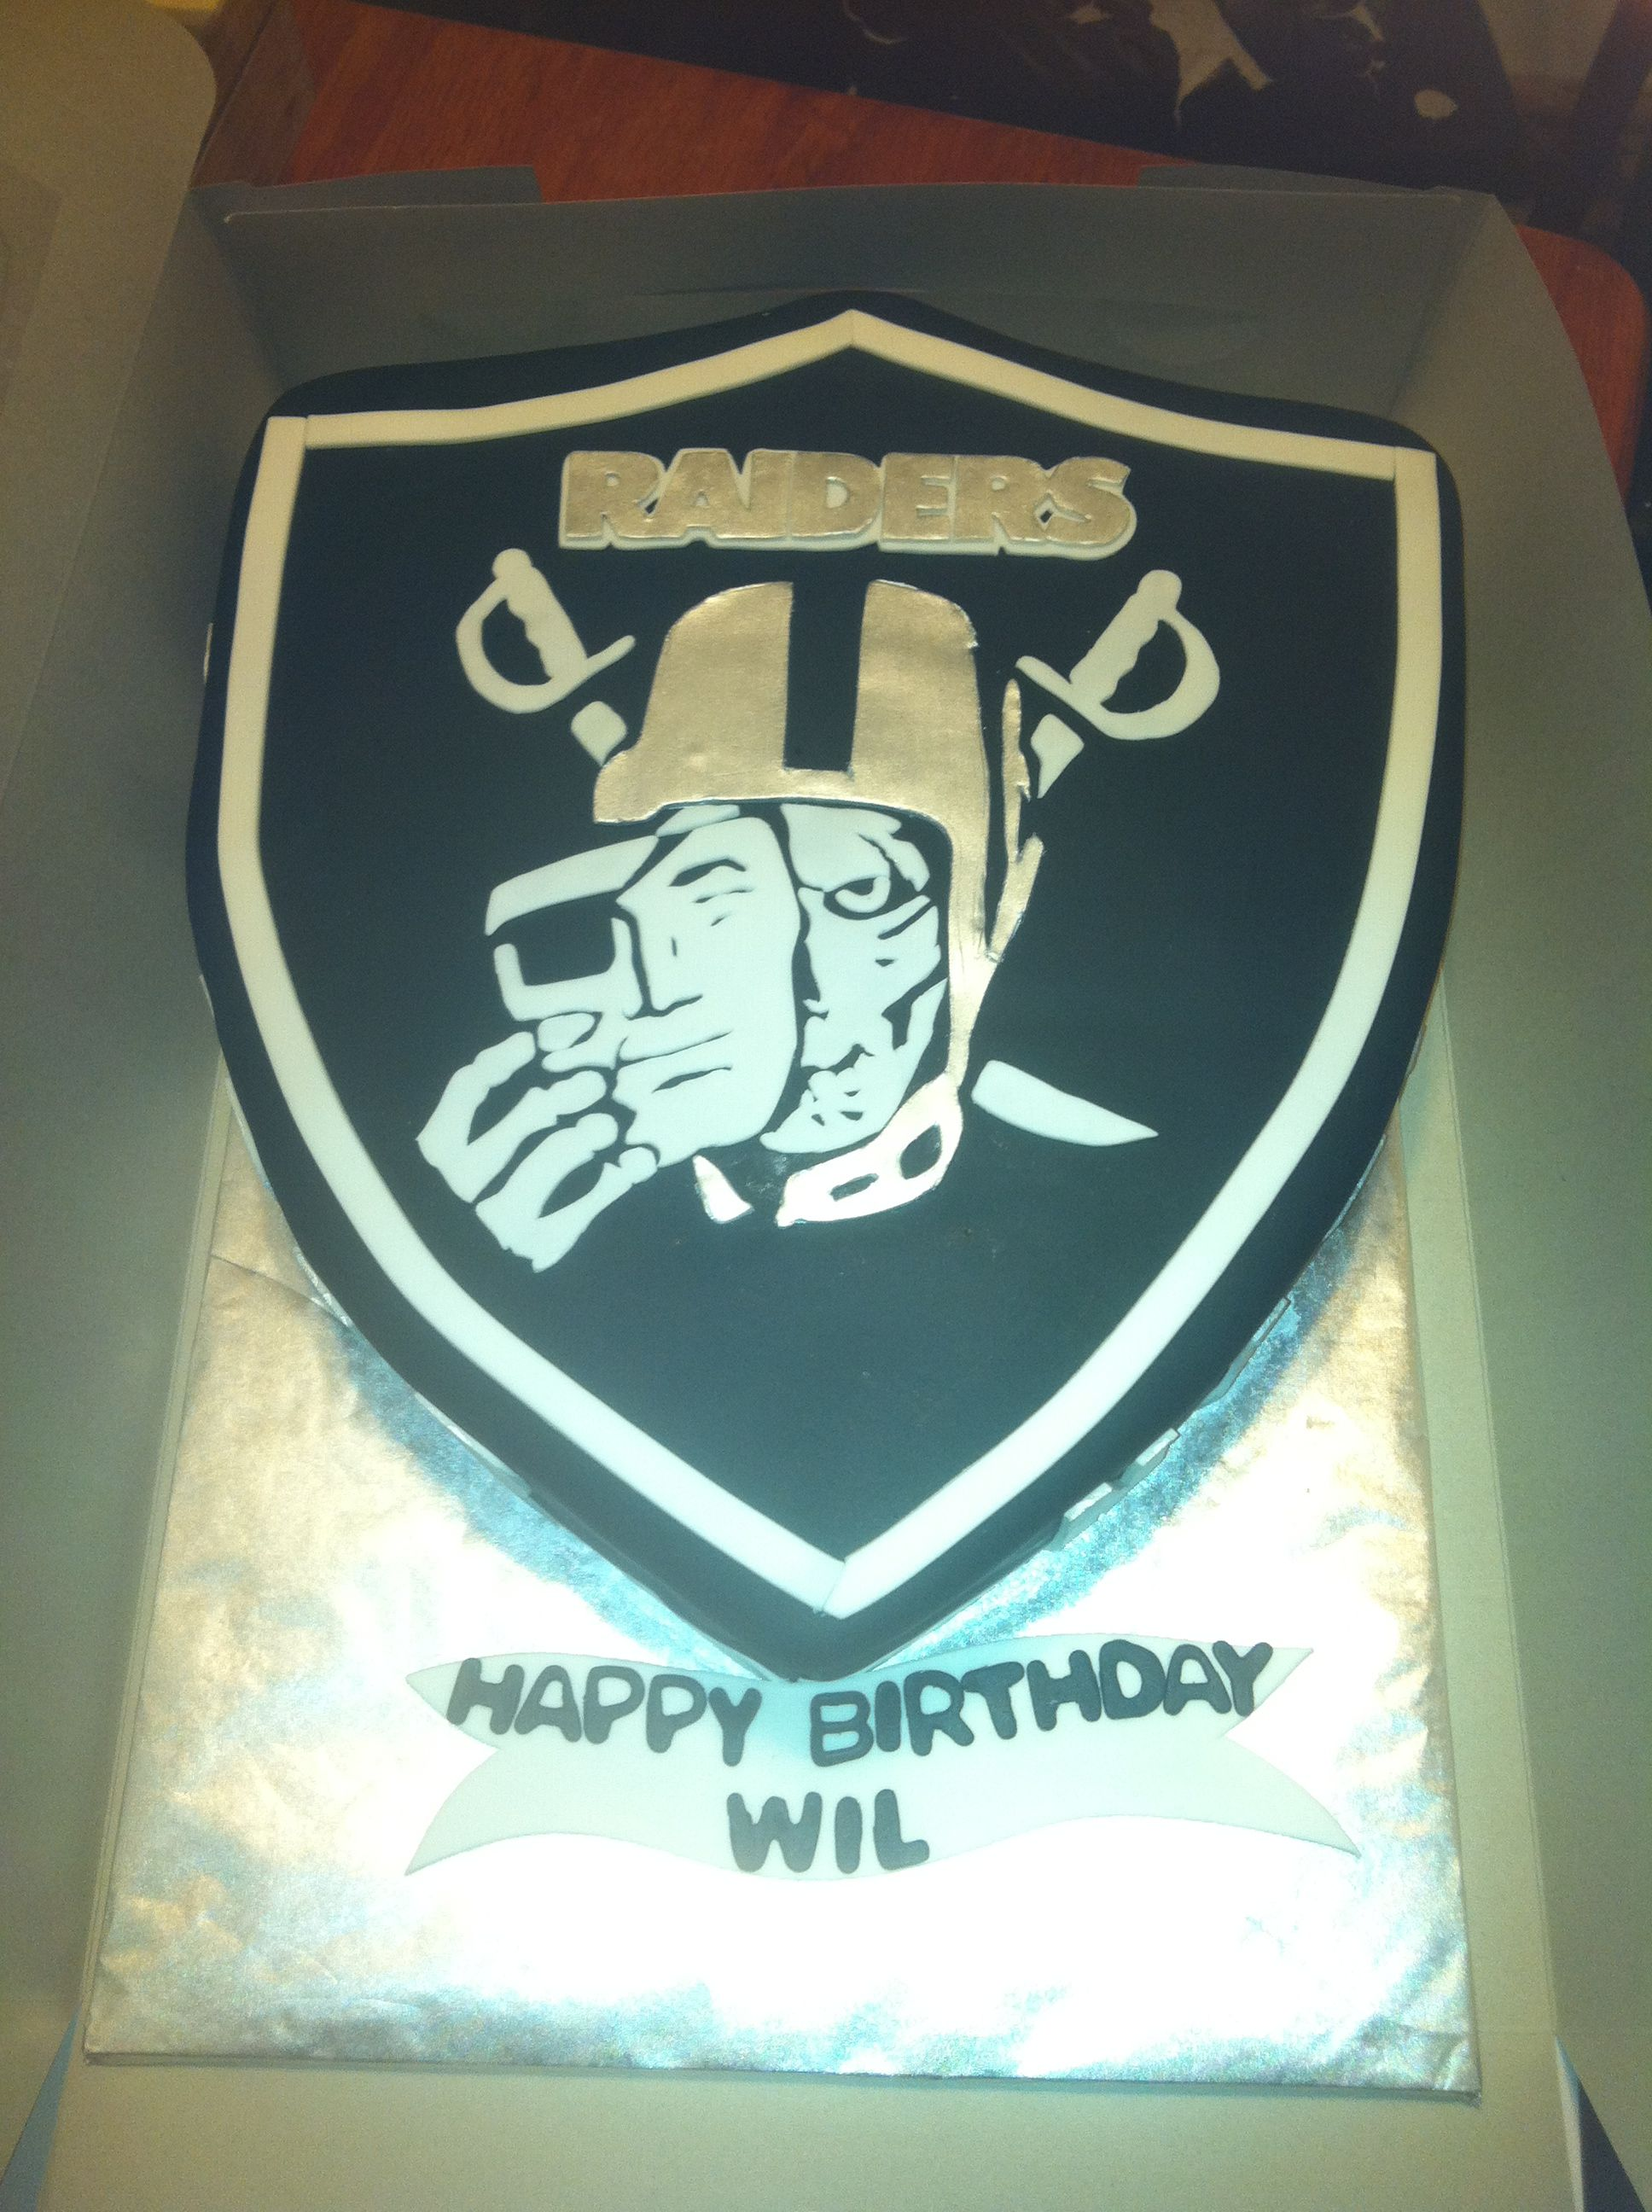 Oakland Raiders Cake For My Brother